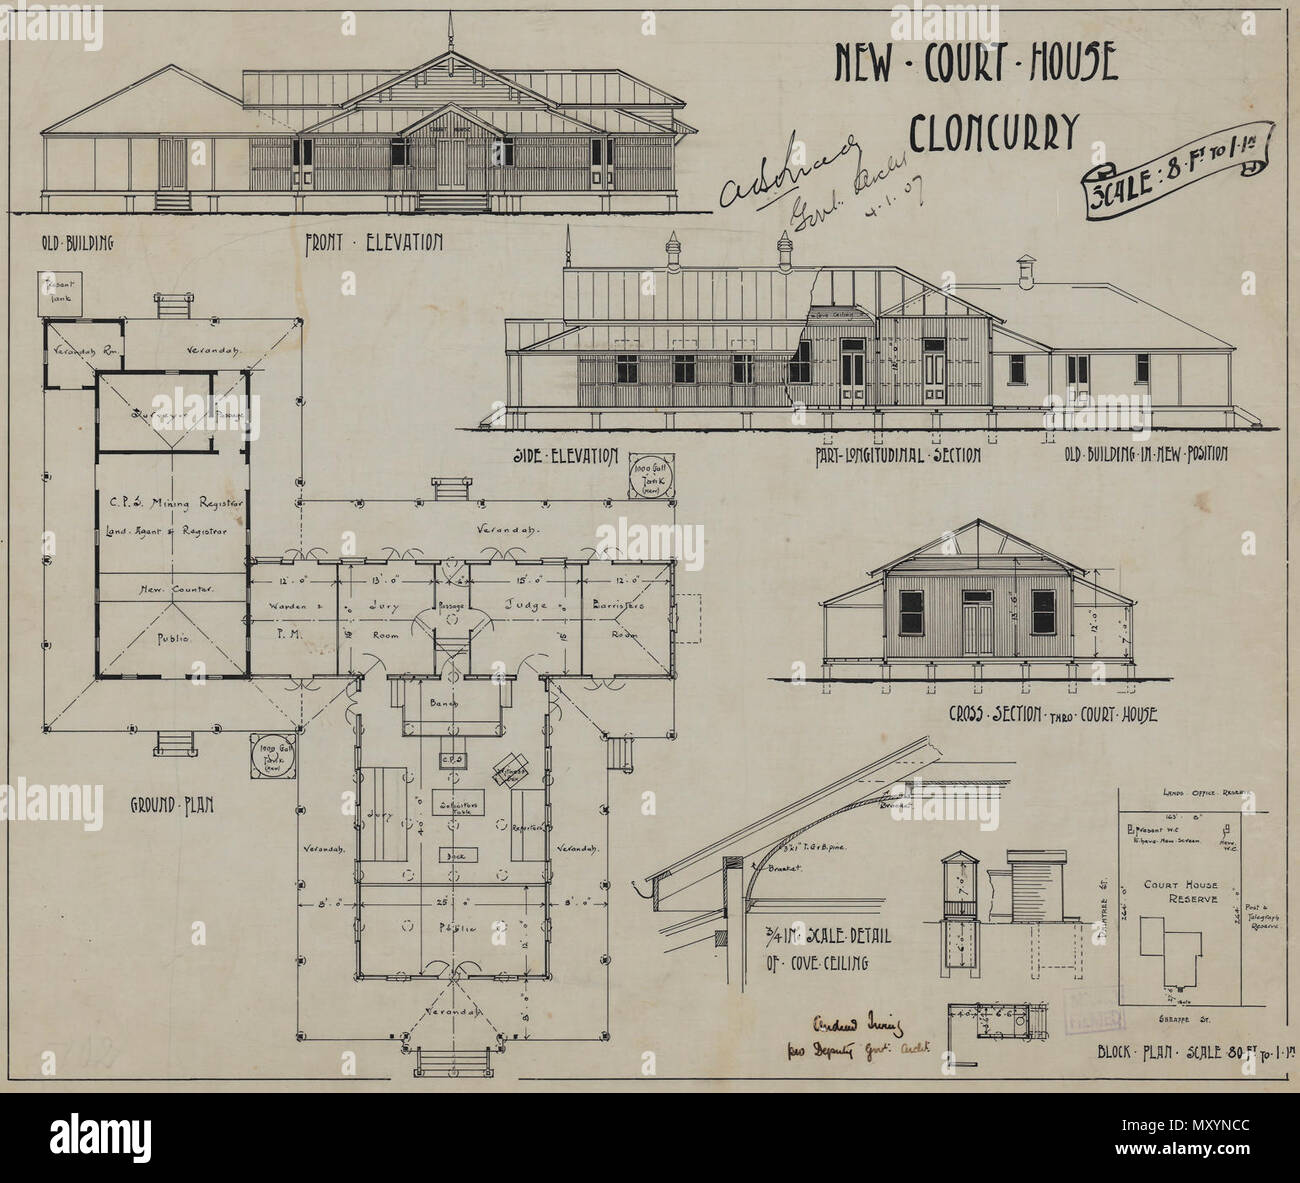 New Court House, Cloncurry, 1907. The original Cloncurry police barracks and court house was built in 1897. These extensions from 1907 more than doubled the the size of the building. It was listed on the Queensland Heritage Registerid=600415 )  in 1992. - Stock Image